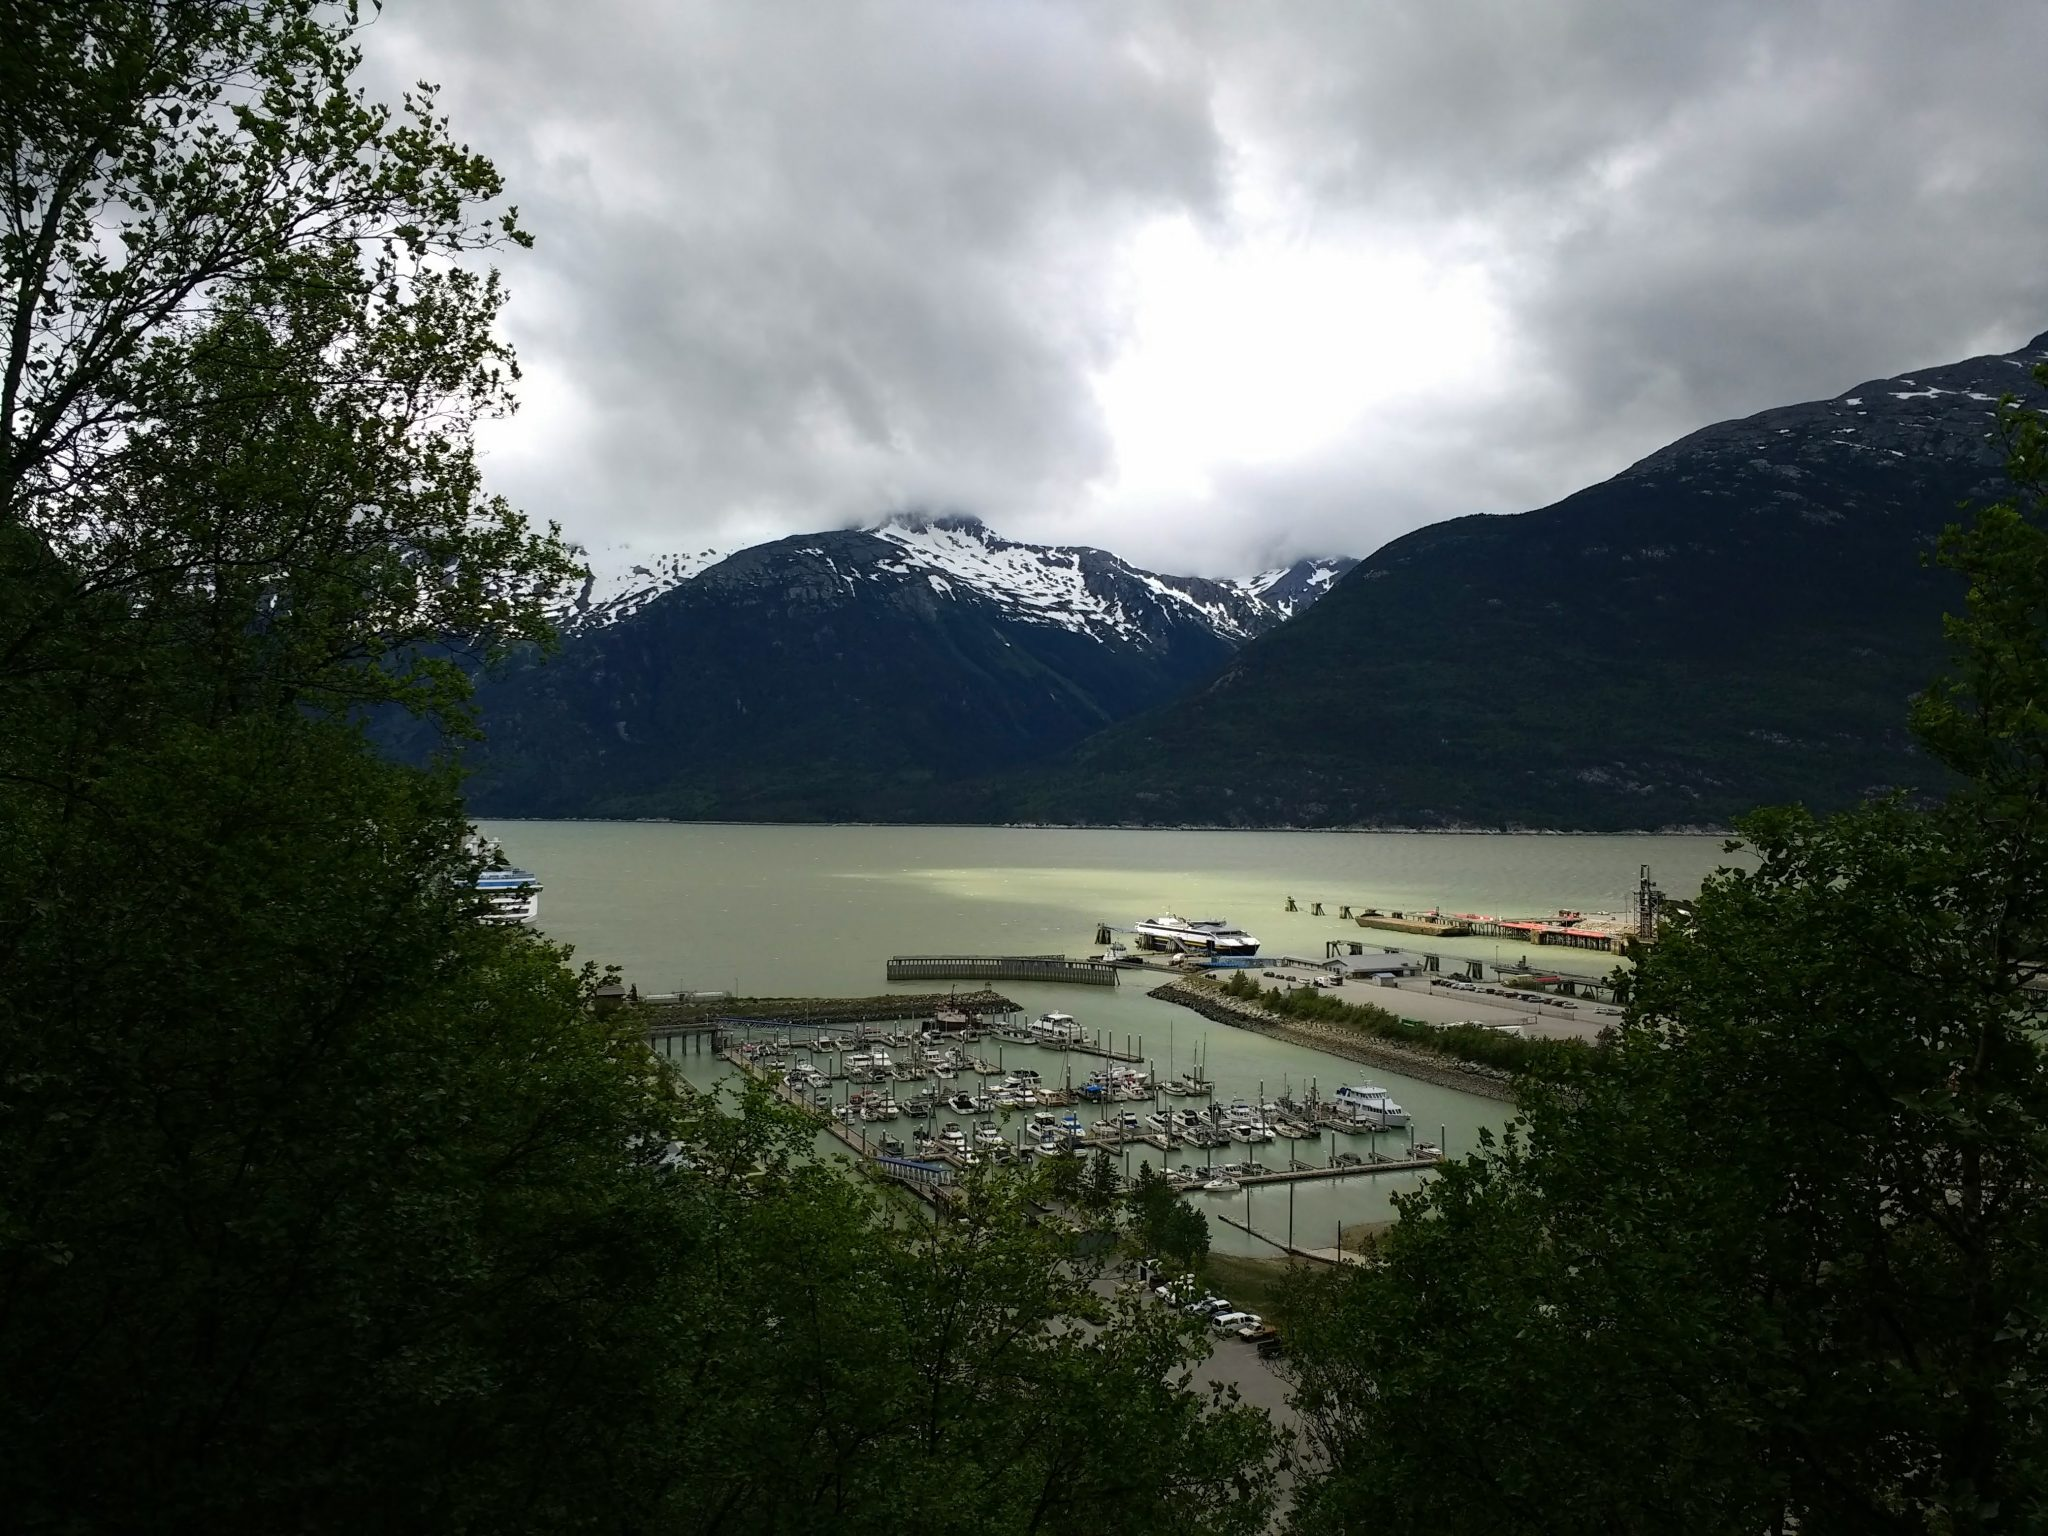 A harbor with snow capped mountains in the background and trees in the foreground